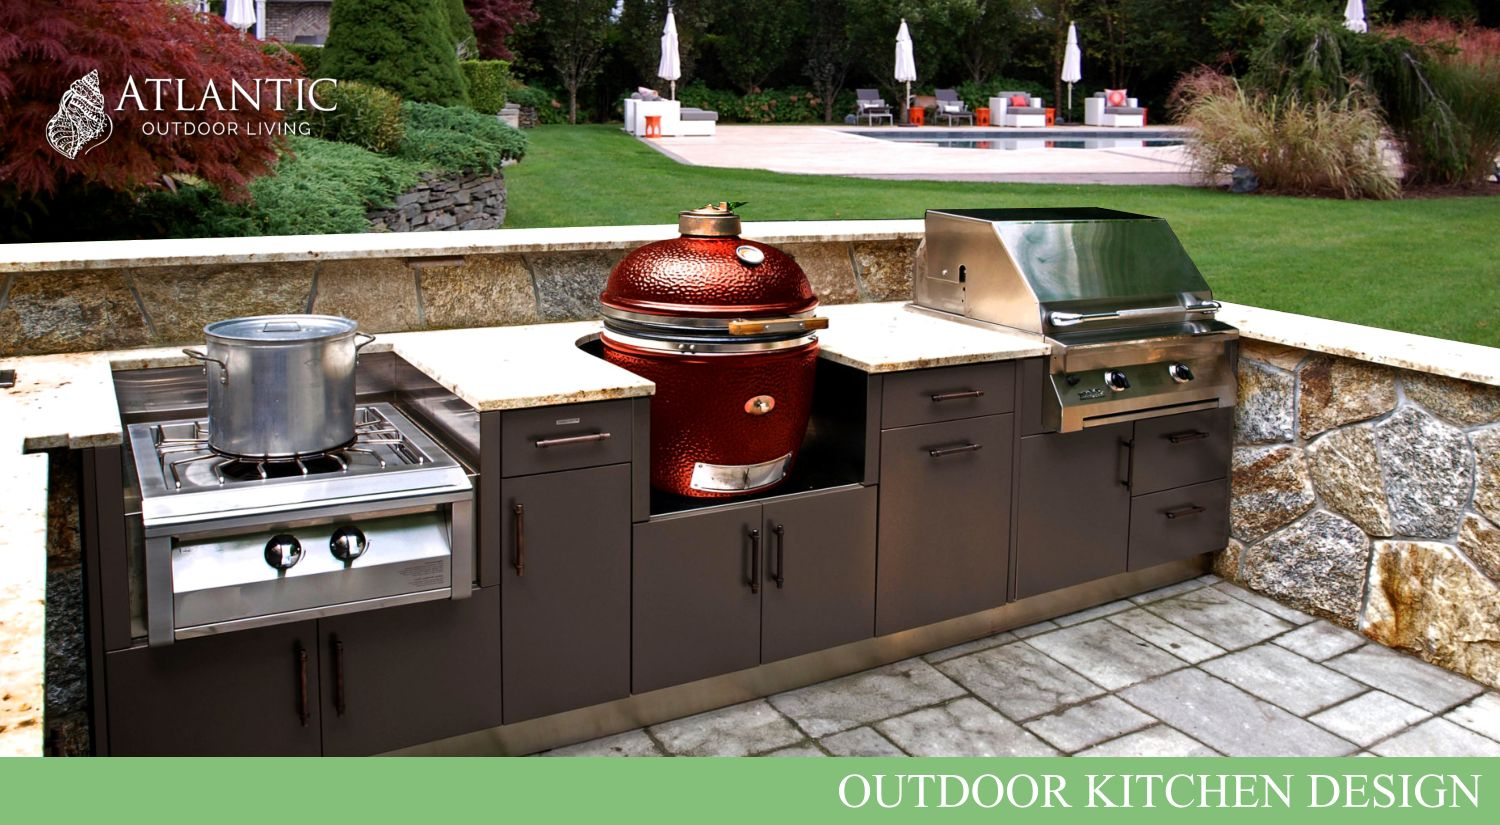 Outdoor Kitchen Designs Outdoor Kitchen Designs With Roofs Atlantic Outdoor Living Is